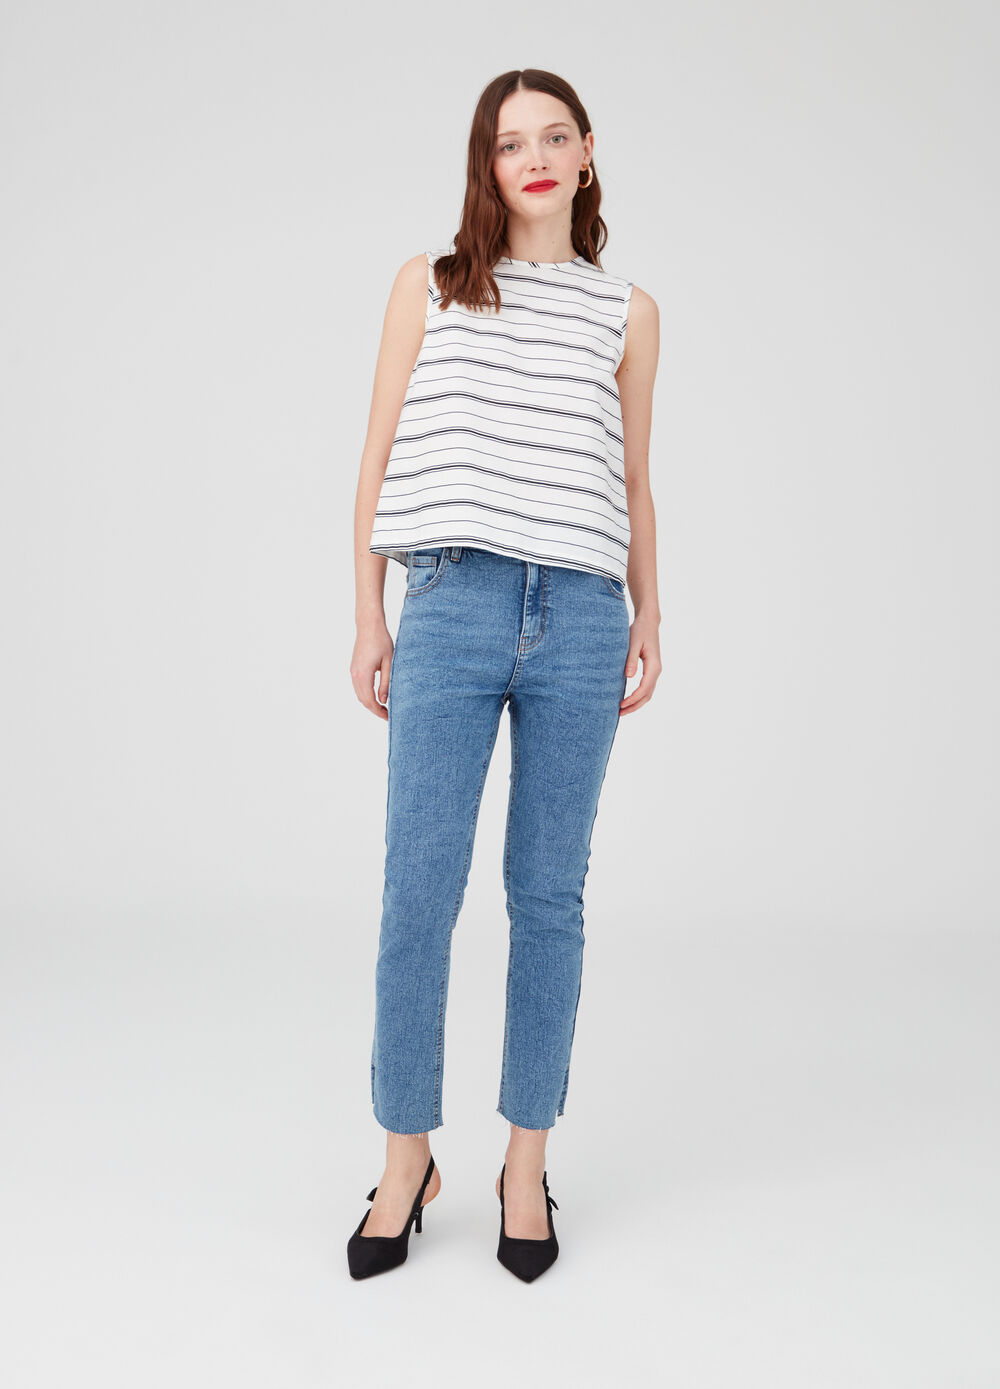 Sleeveless shirt with striped split